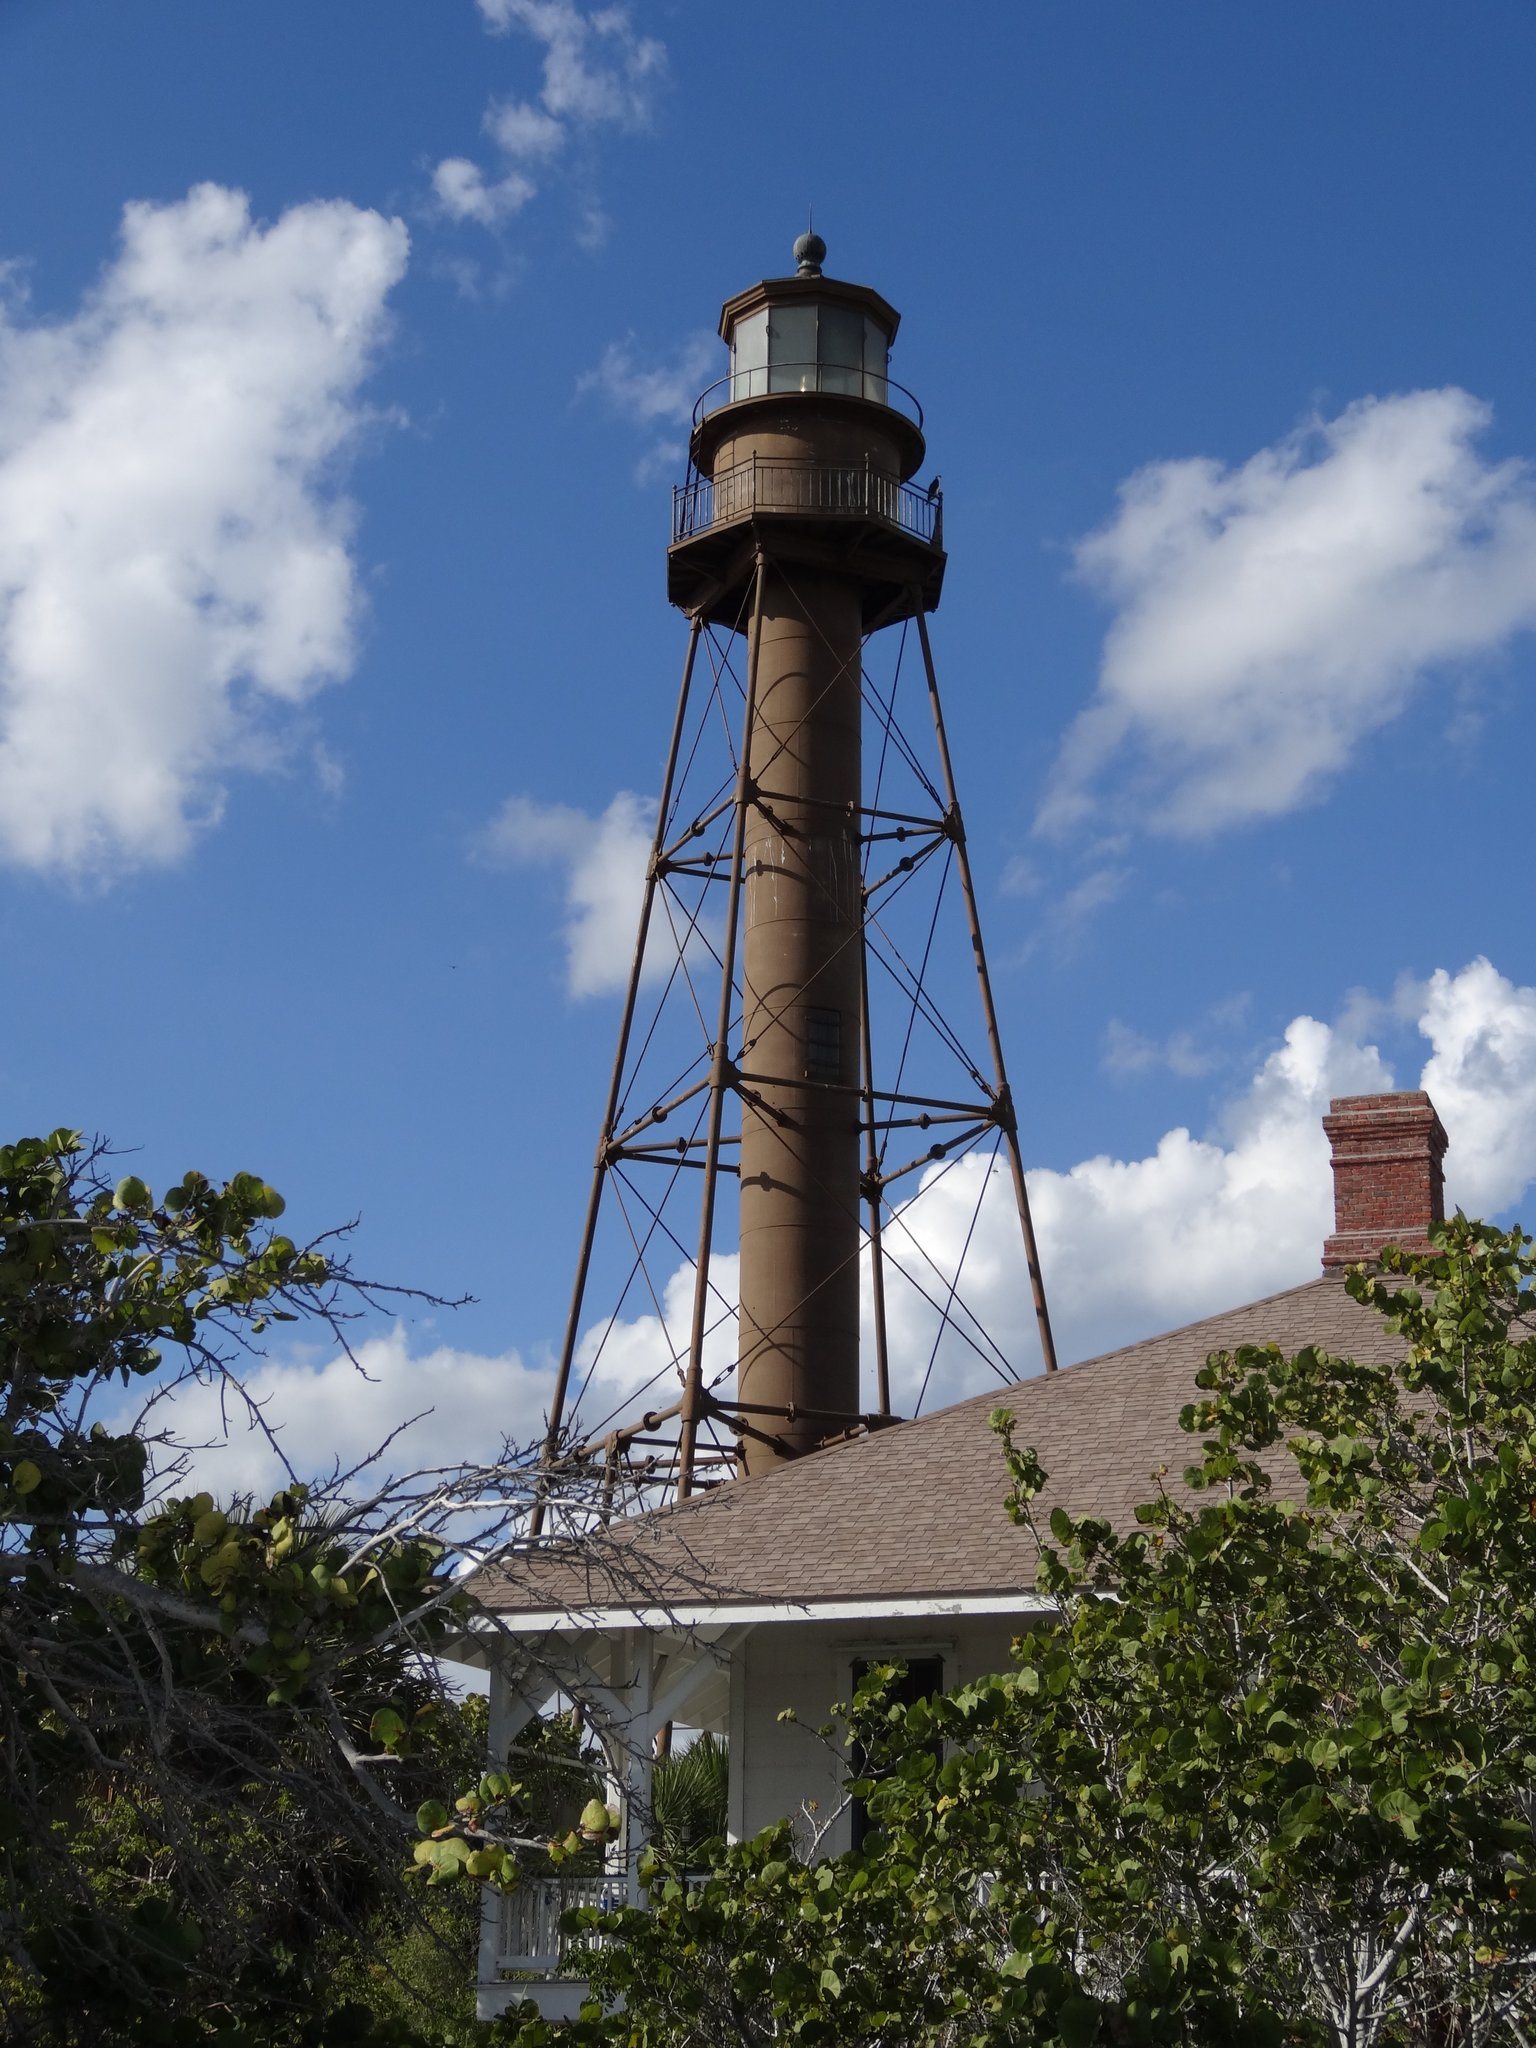 The Sanibel Island Light Or Point Ybel Light Is The First Lighthouse On  Floridau0027s Gulf Coast North Of Key West And The Dry Tortugas.